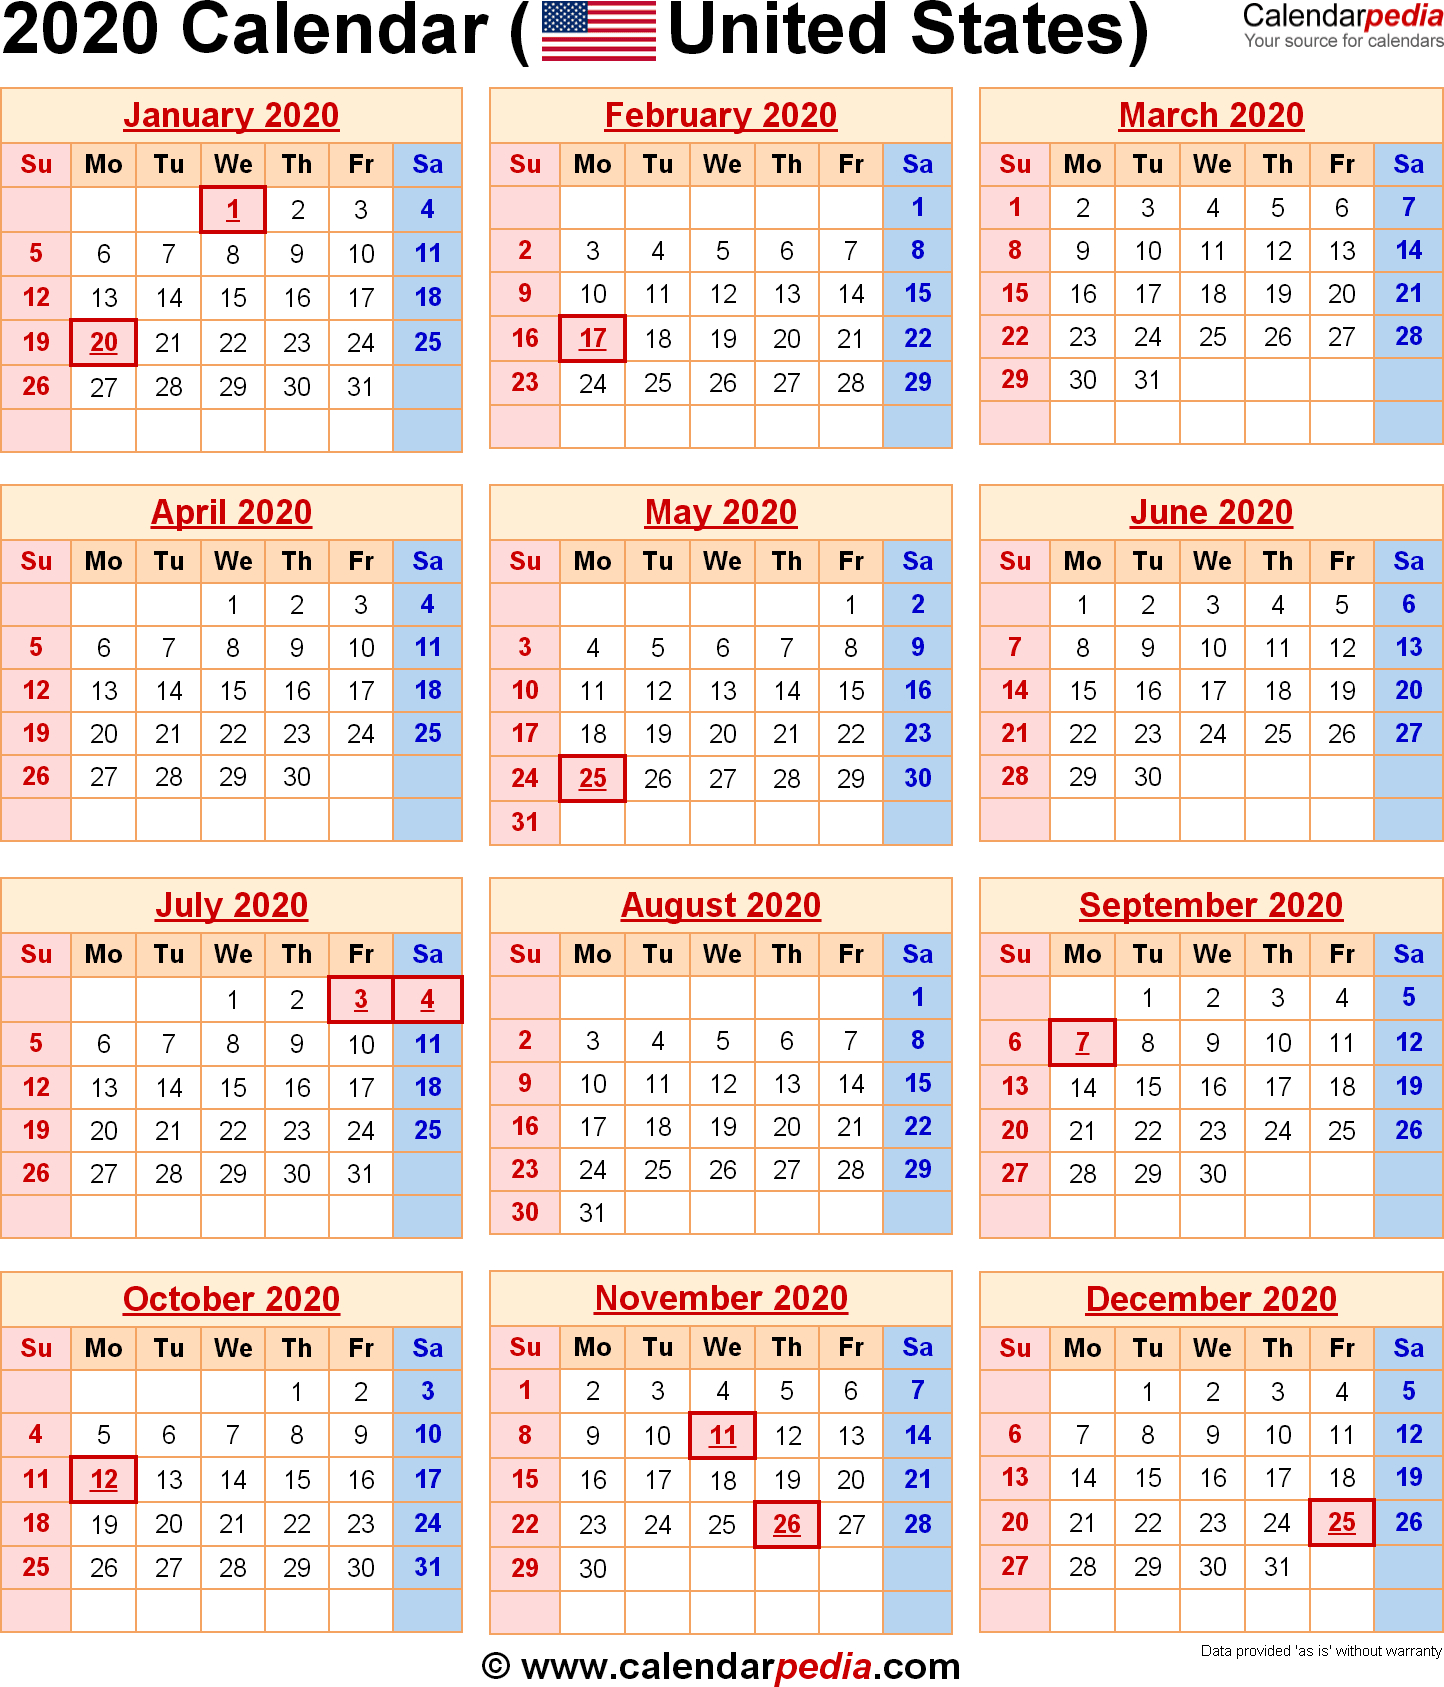 Calendar For Year 2020 United States - Wpa.wpart.co